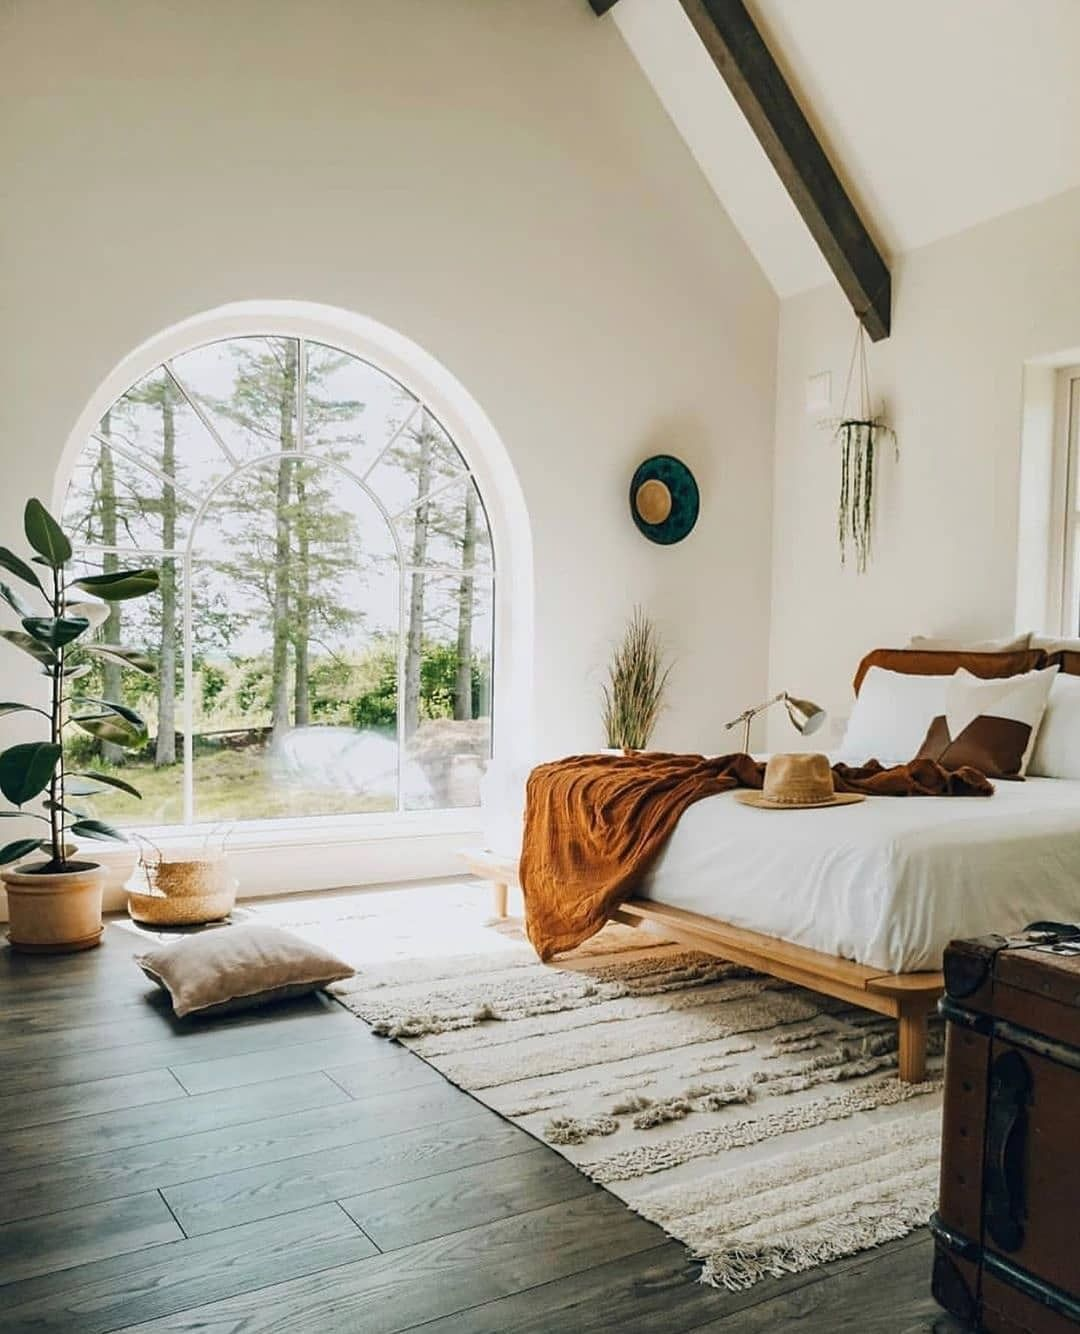 "Crumbs Home on Instagram: ""Does anybody else agree that this might be one of the most beautiful bedrooms in existence?! The archway window, and the scene outside the…"" #onehome"